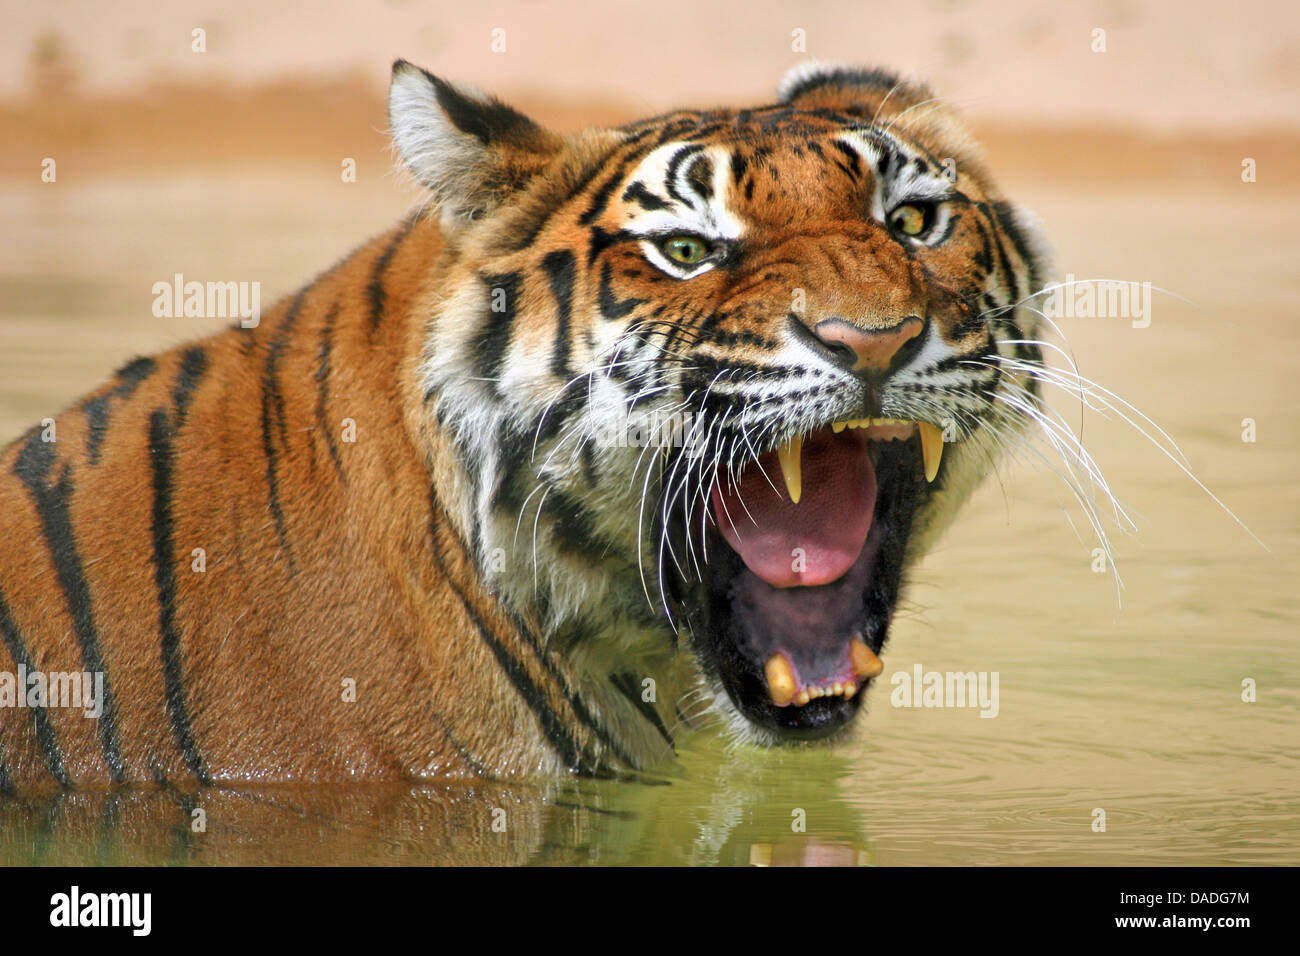 Siberian tiger, Amurian tiger (Panthera tigris altaica), sitting in the water snarling - Stock Image